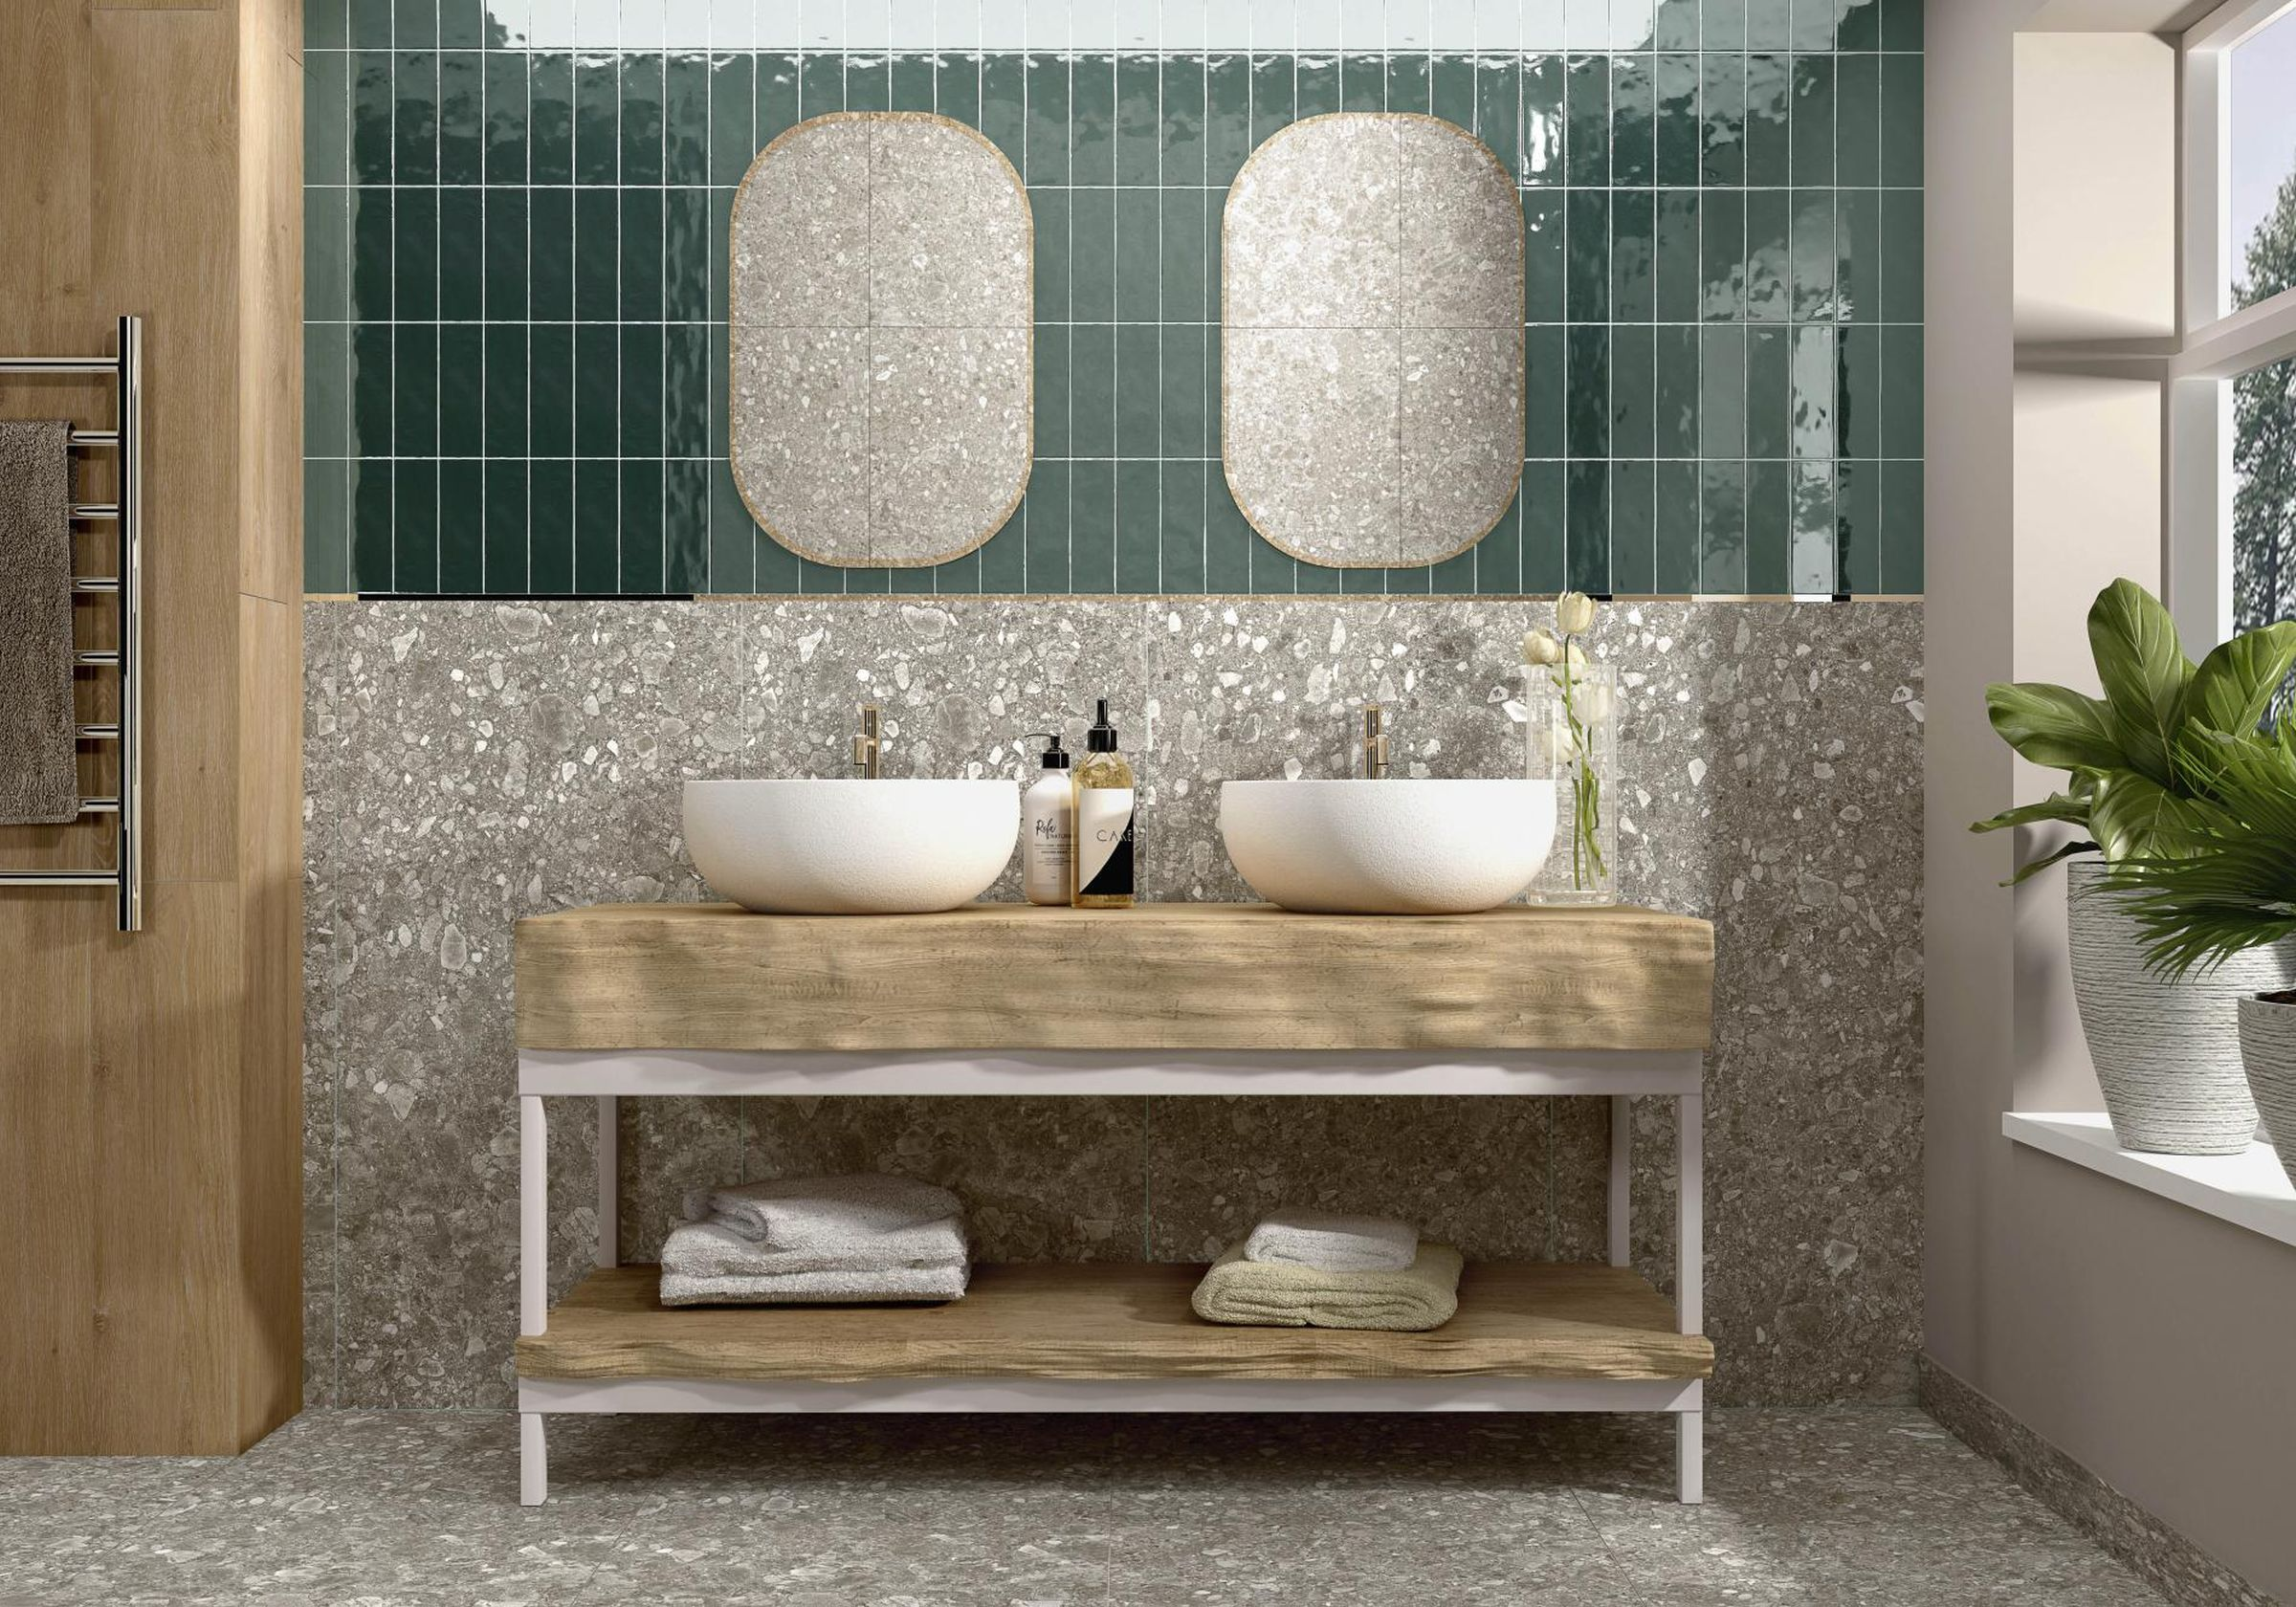 We need to talk about Terrazzo